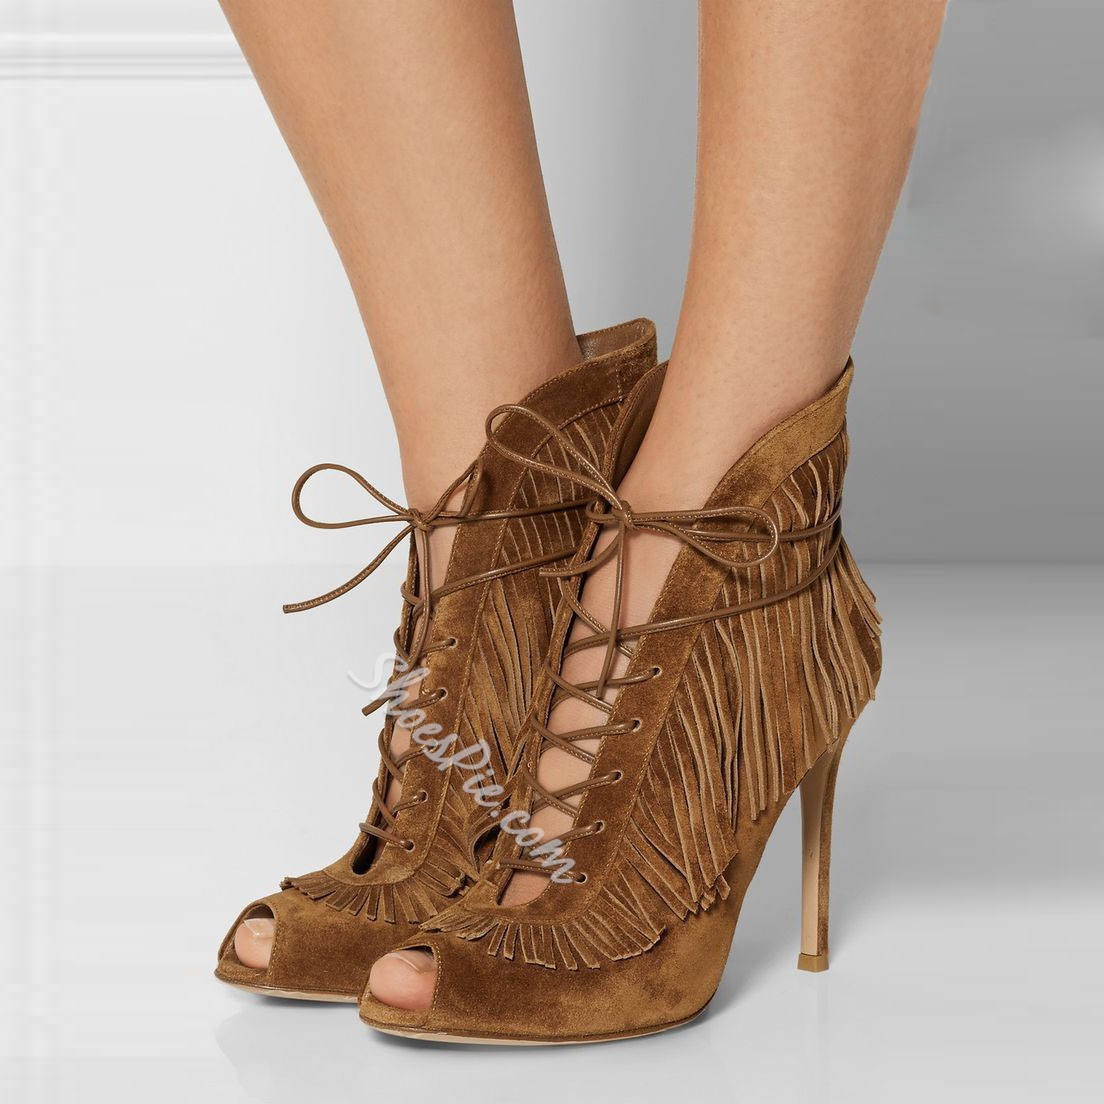 Shoespie Classic Tassels Pee Toe Lace Up Shoes